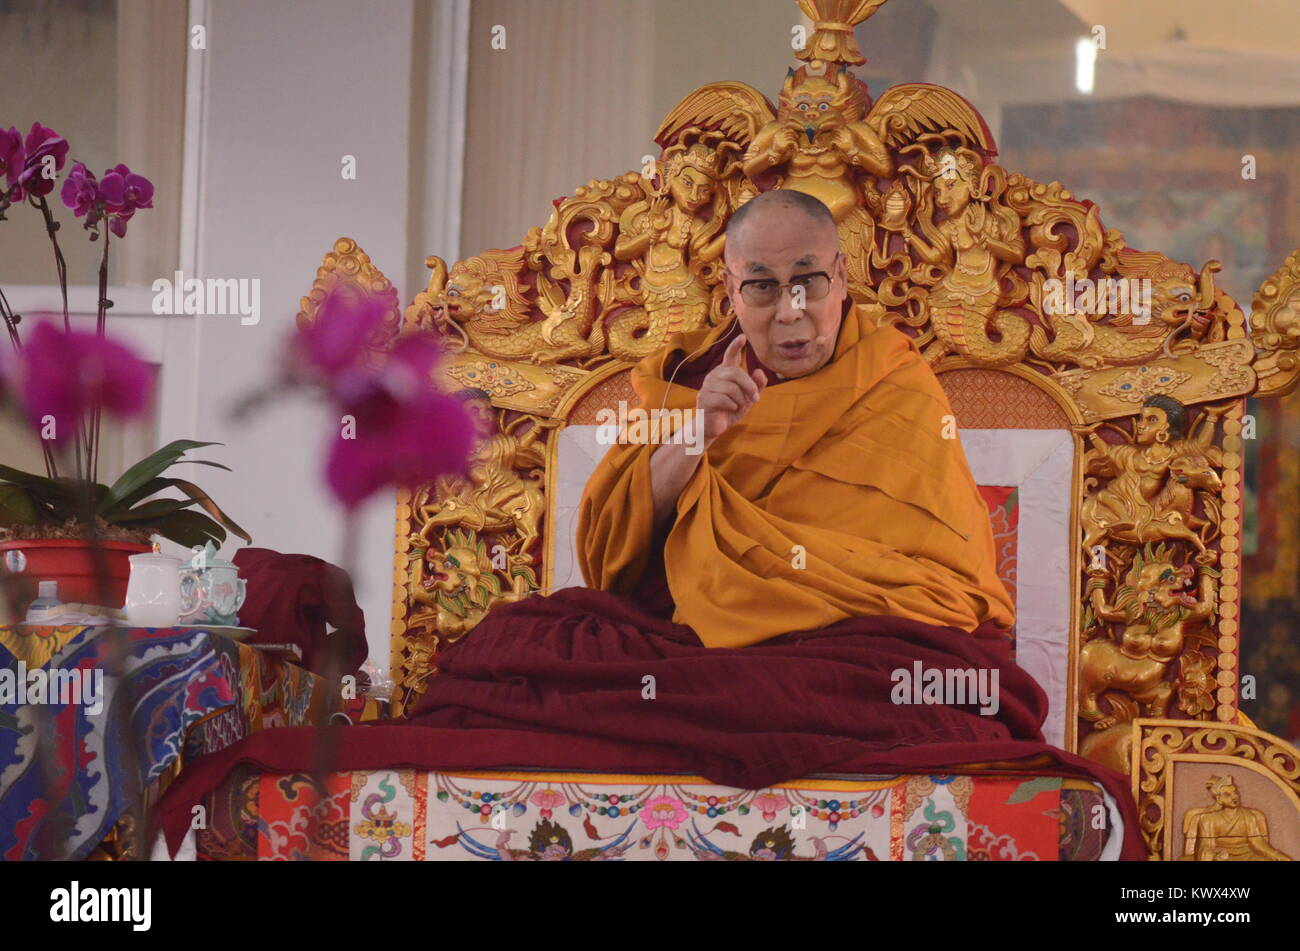 Bodh gaya, India 05 January 2018 - The Holiness 14th Dalai Lama is addressing a   gathering during the special teaching - Stock Image